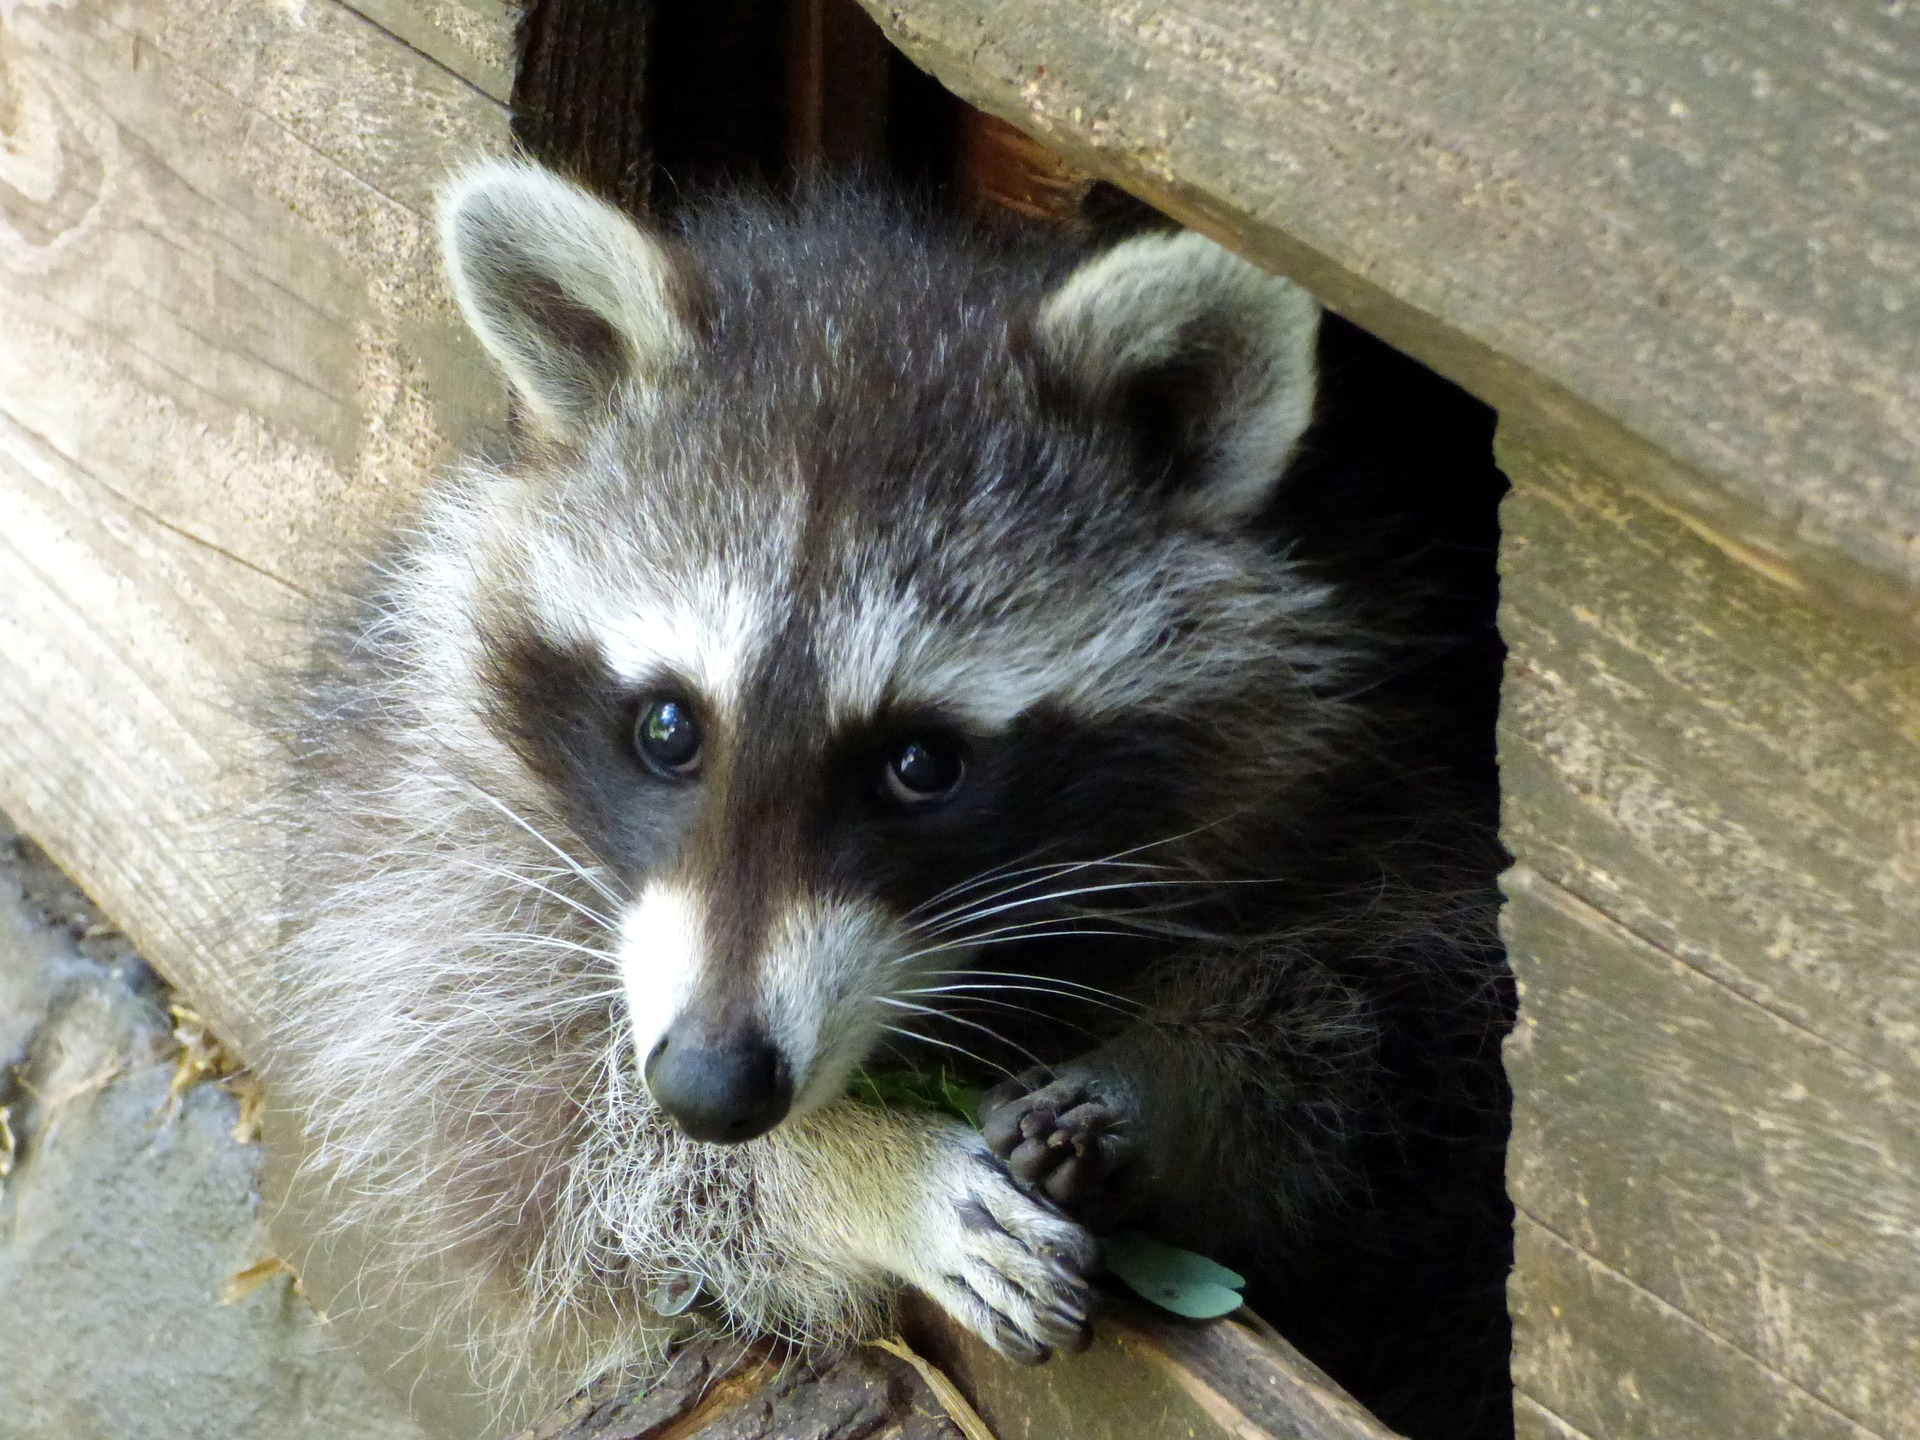 How to Prevent Raccoons from Nesting in Your Home